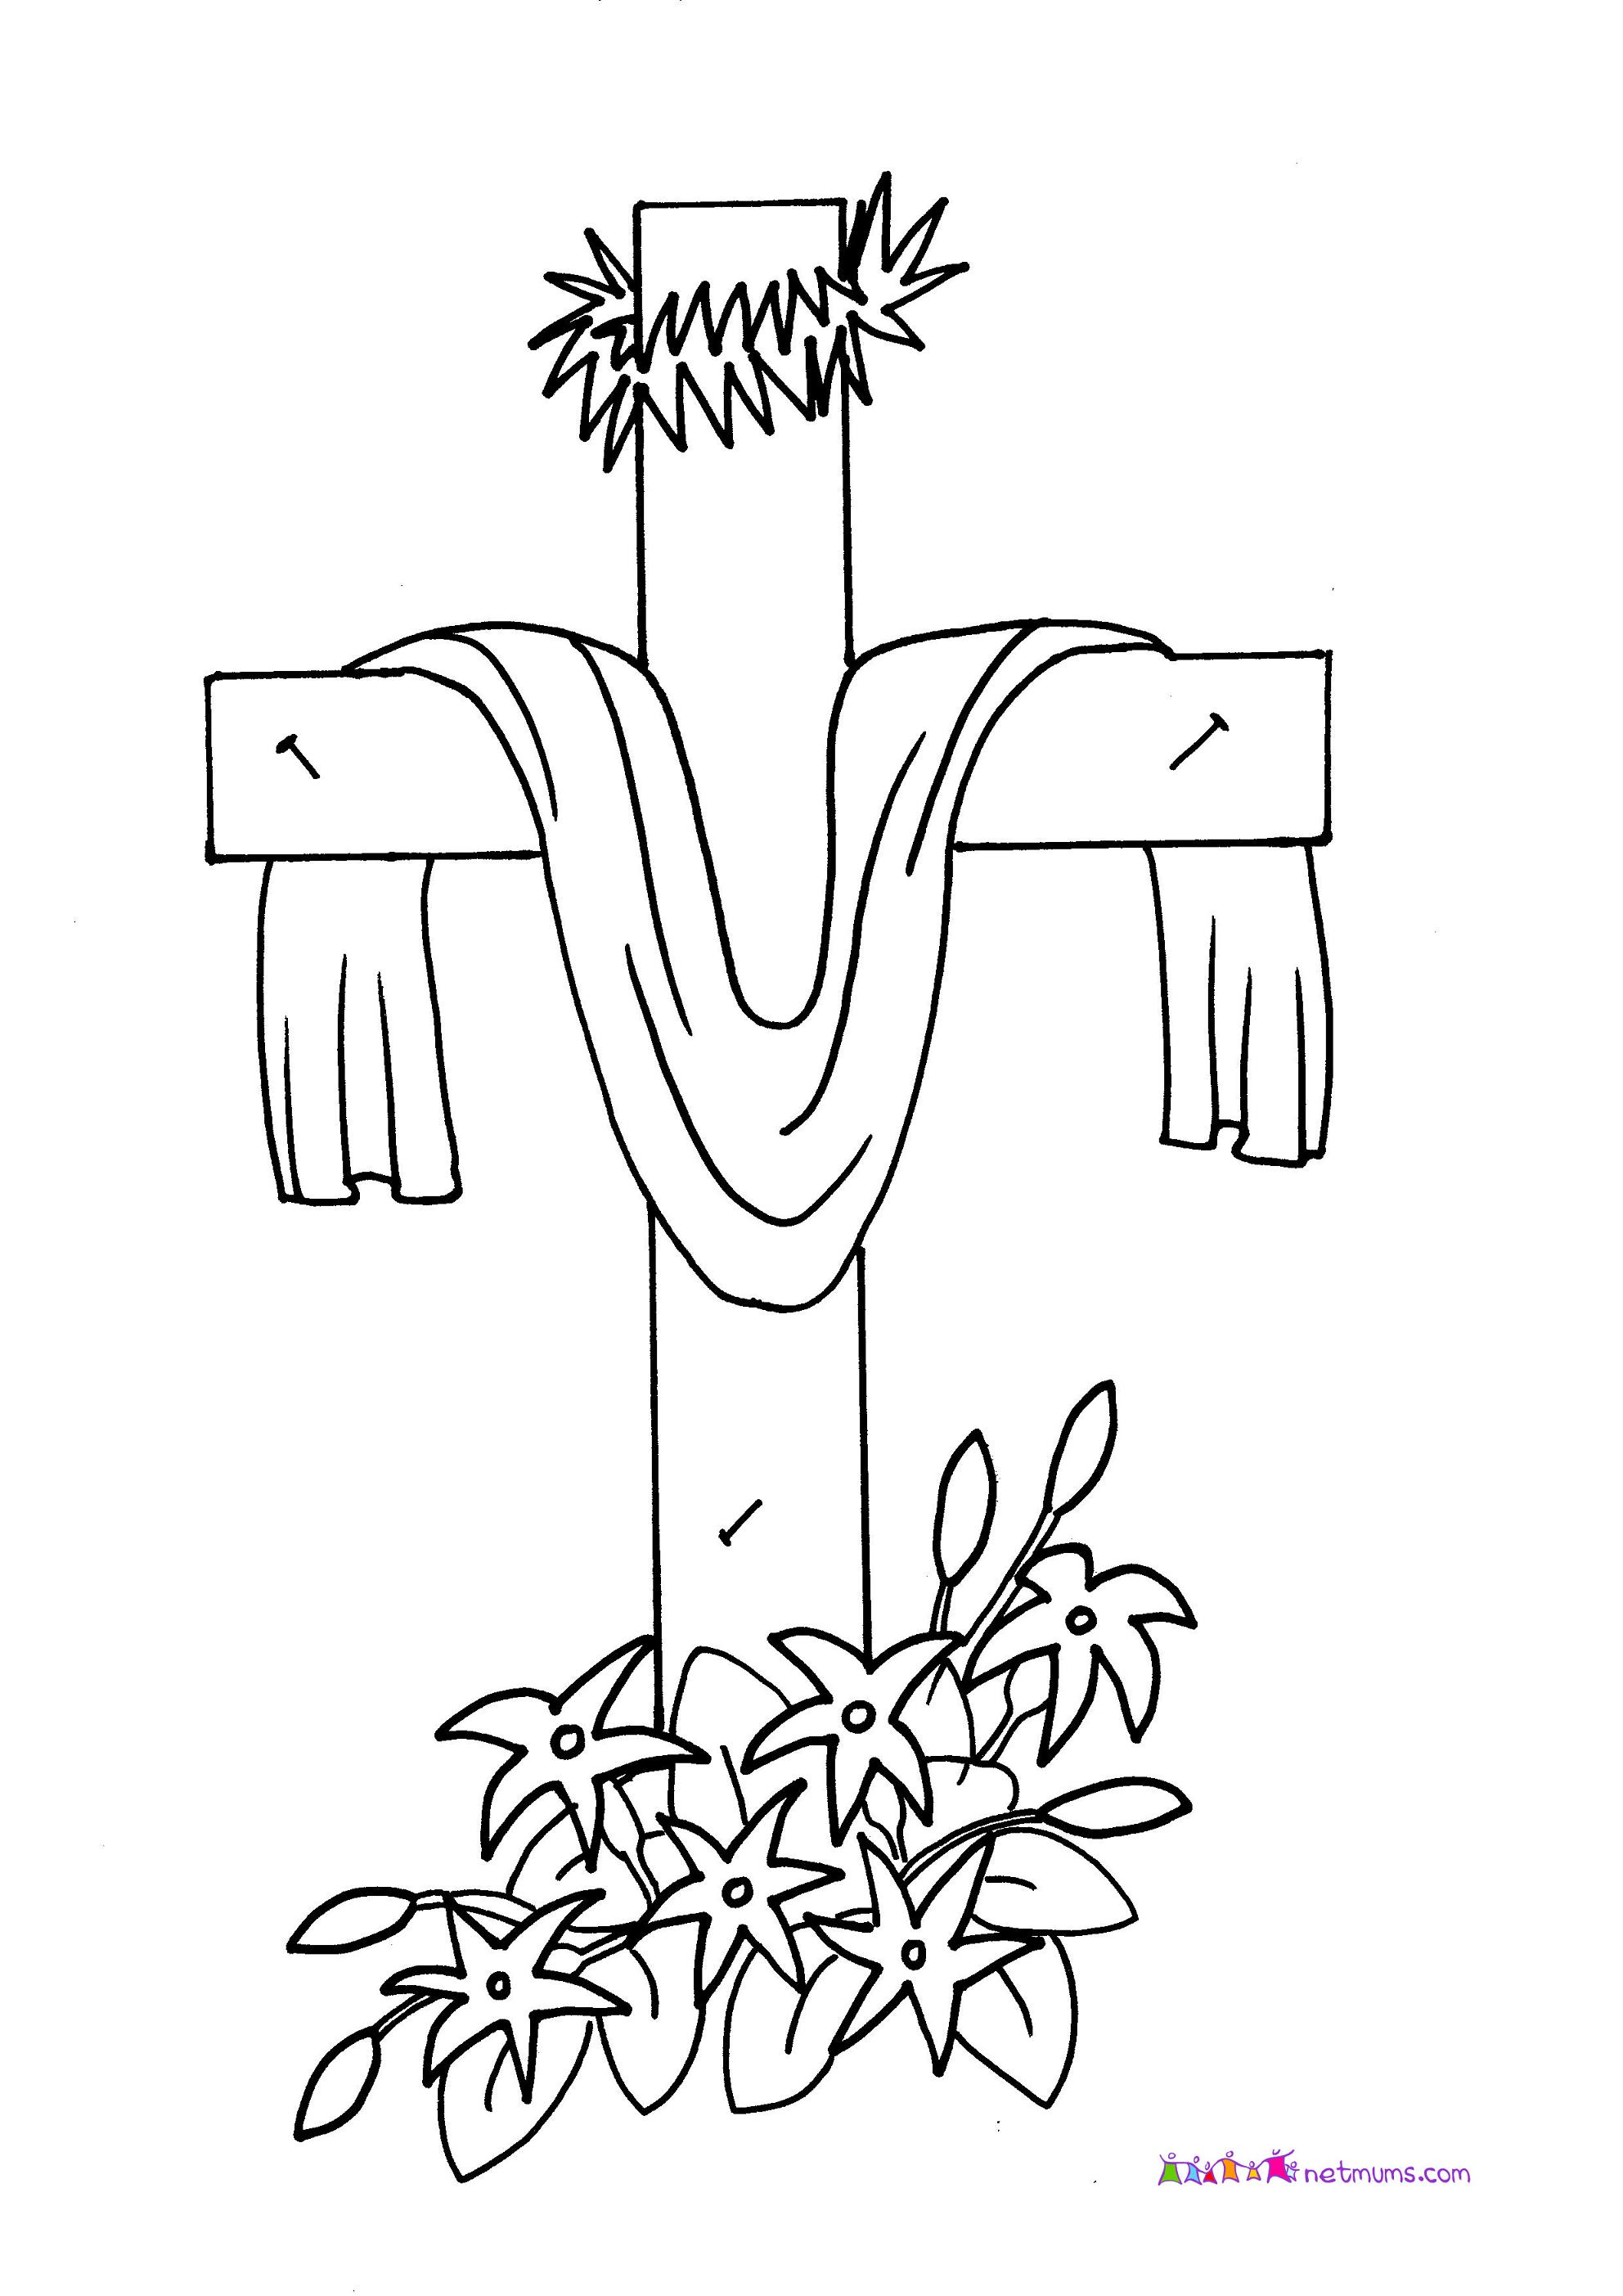 Jesus Loves Me Coloring Pages 166915 Jesus Loves You Coloring Page